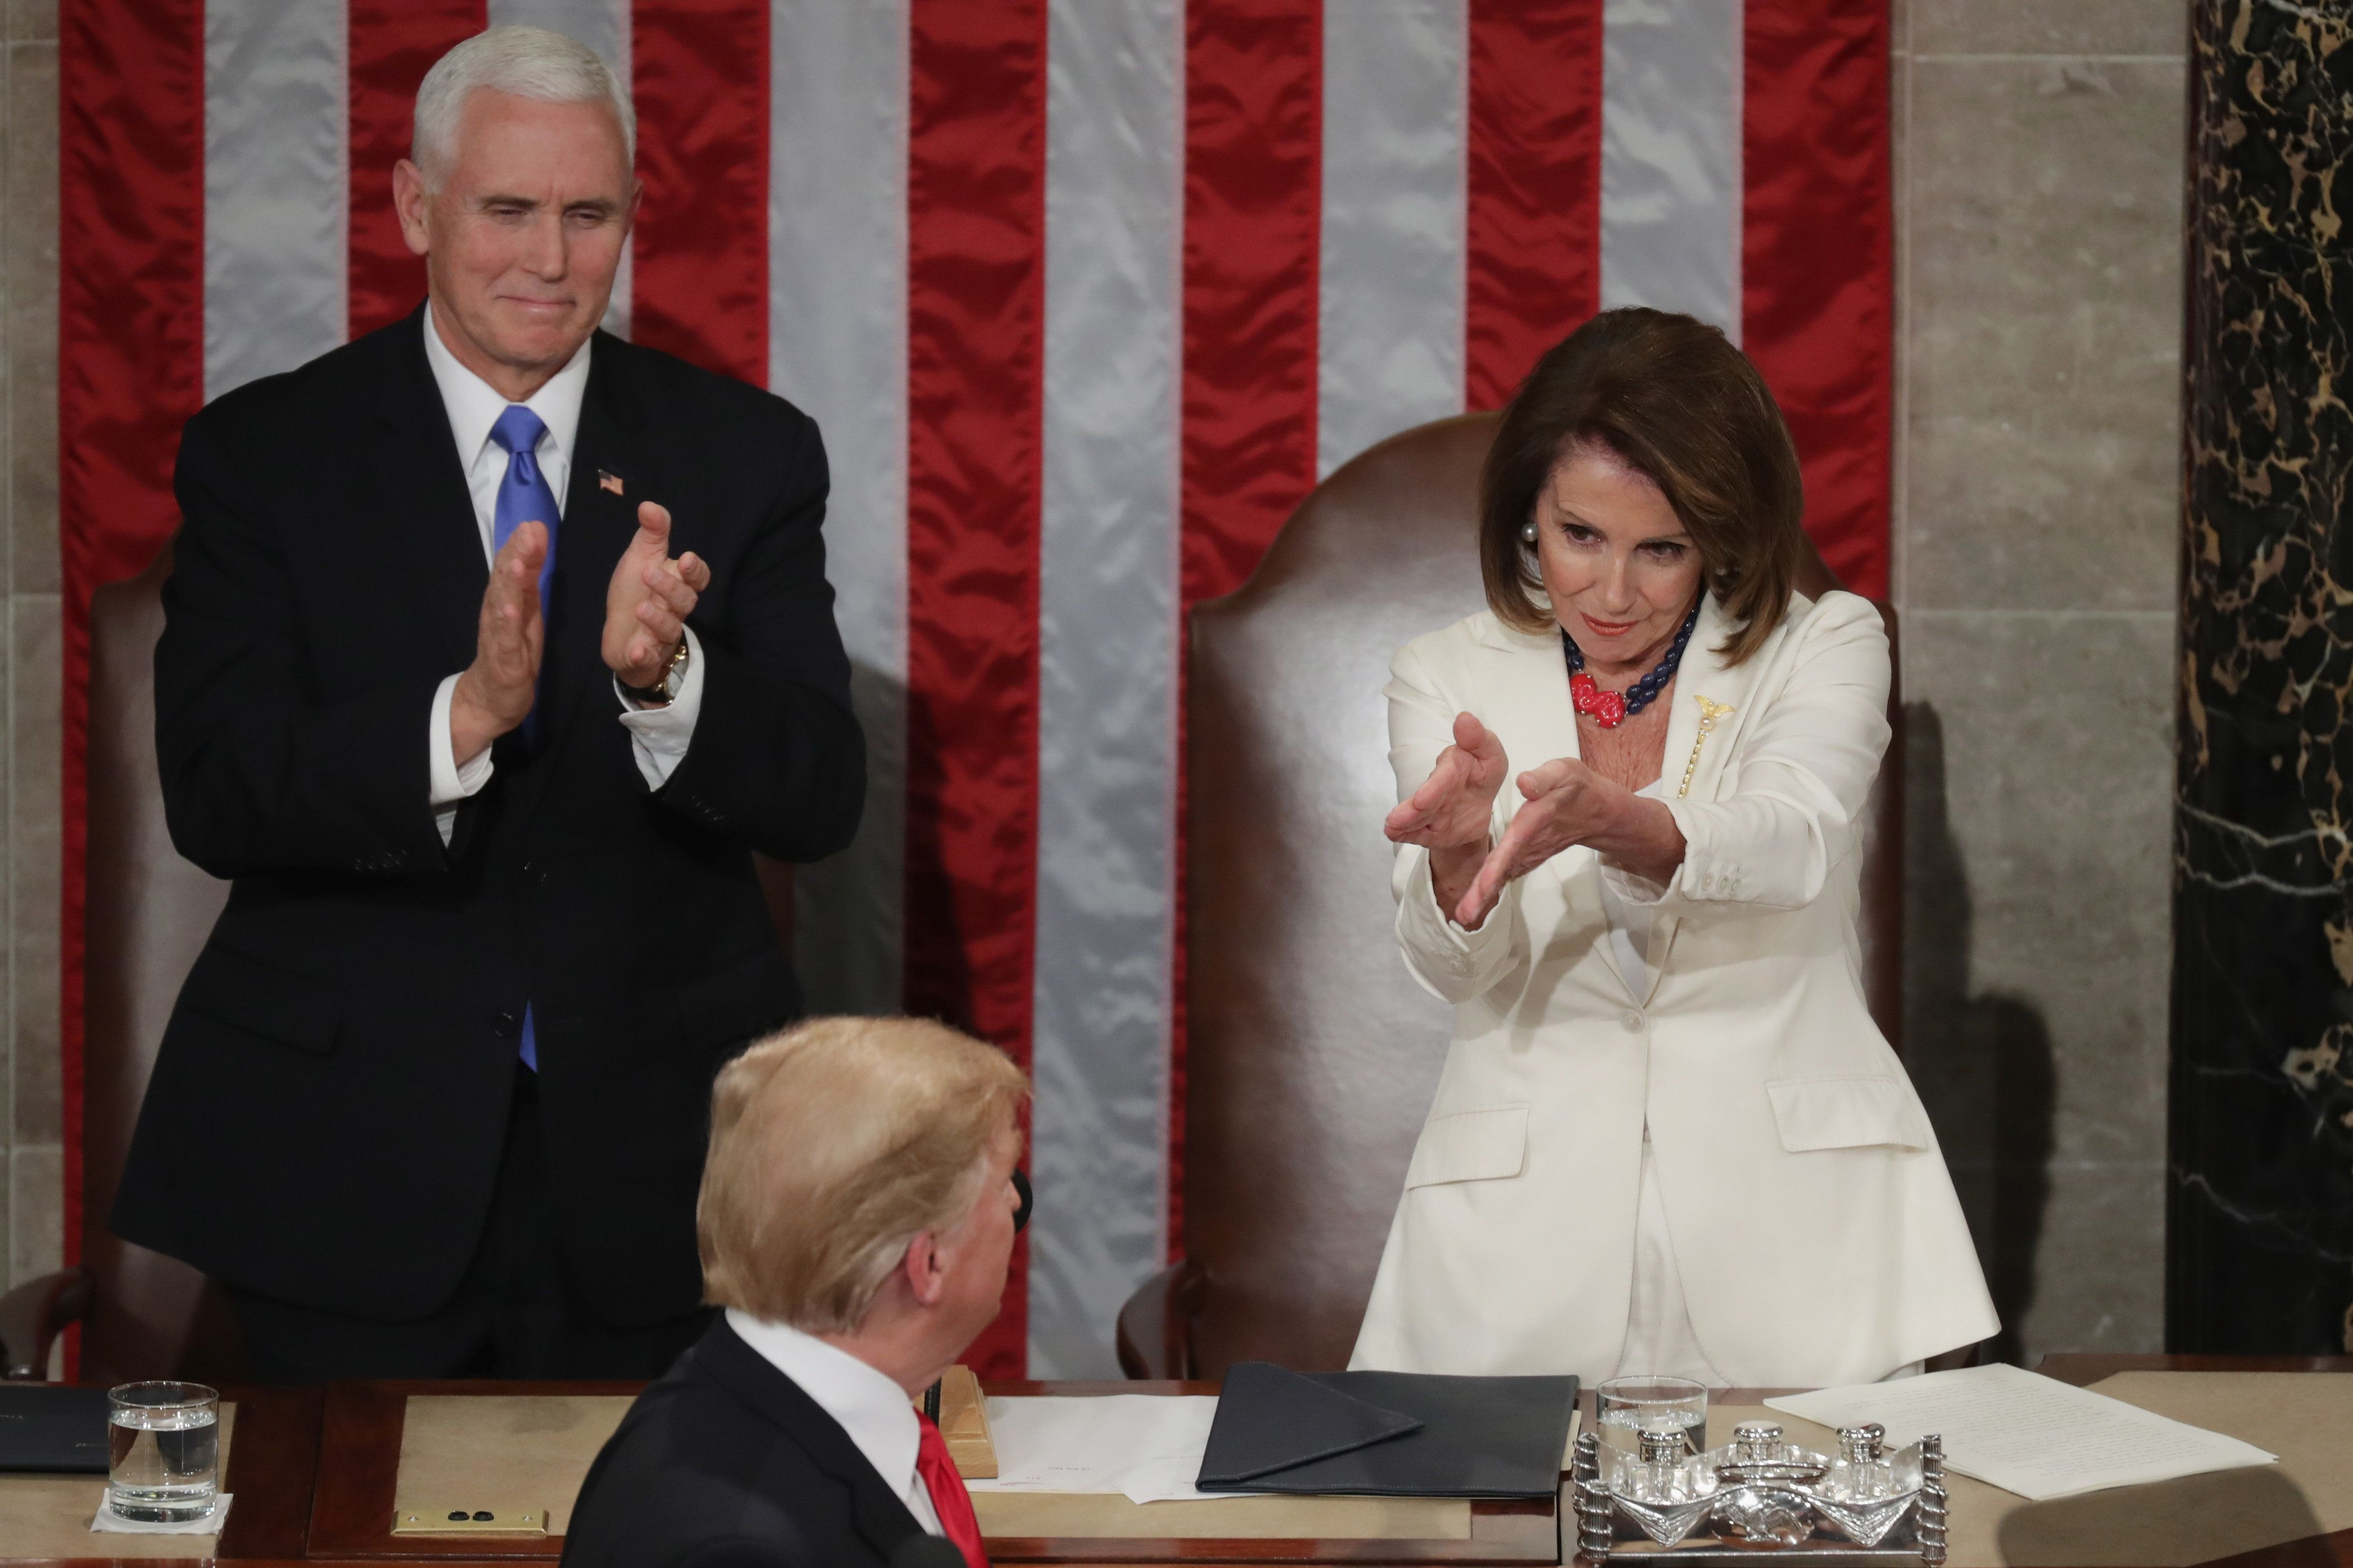 WASHINGTON, DC - FEBRUARY 05: Vice President Mike Pence and Speaker Nancy Pelosi greet President Donald Trump just ahead of the State of the Union address in the chamber of the U.S. House of Representatives at the U.S. Capitol Building on February 5, 2019 in Washington, DC. President Trump's second State of the Union address was postponed one week due to the partial government shutdown.  (Photo by Chip Somodevilla/Getty Images)